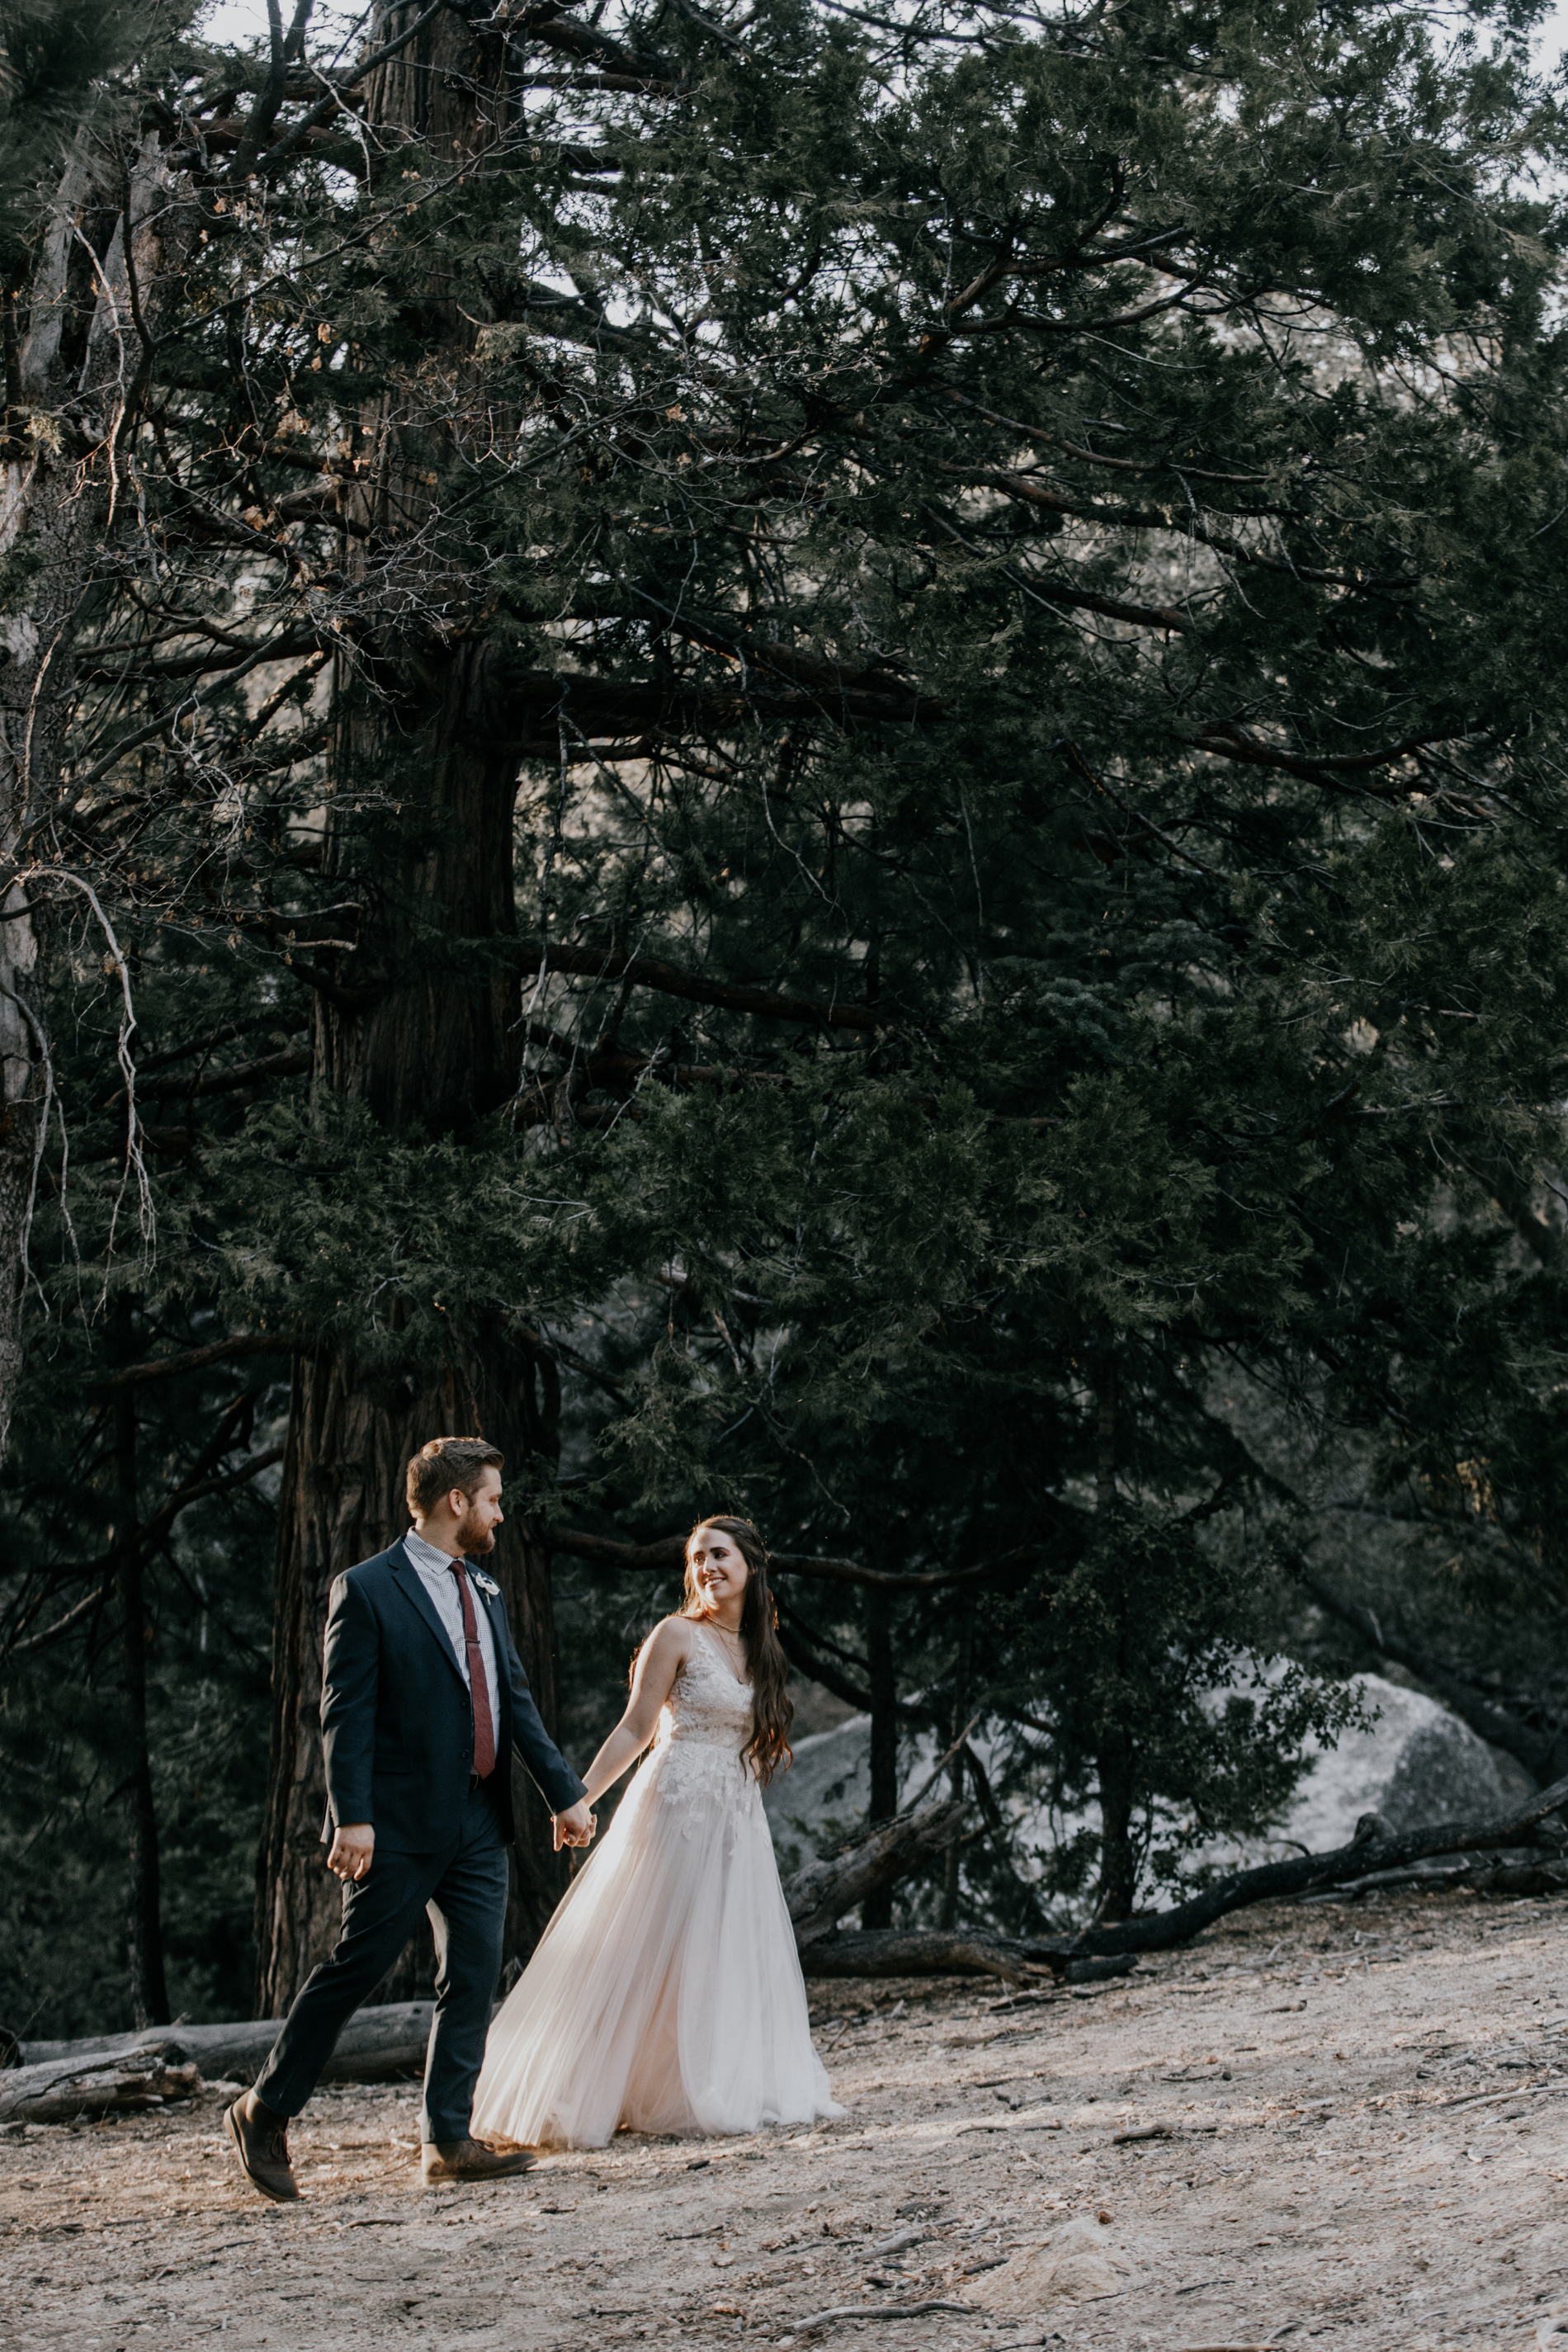 WeddingphotographersSanDiego.jpg